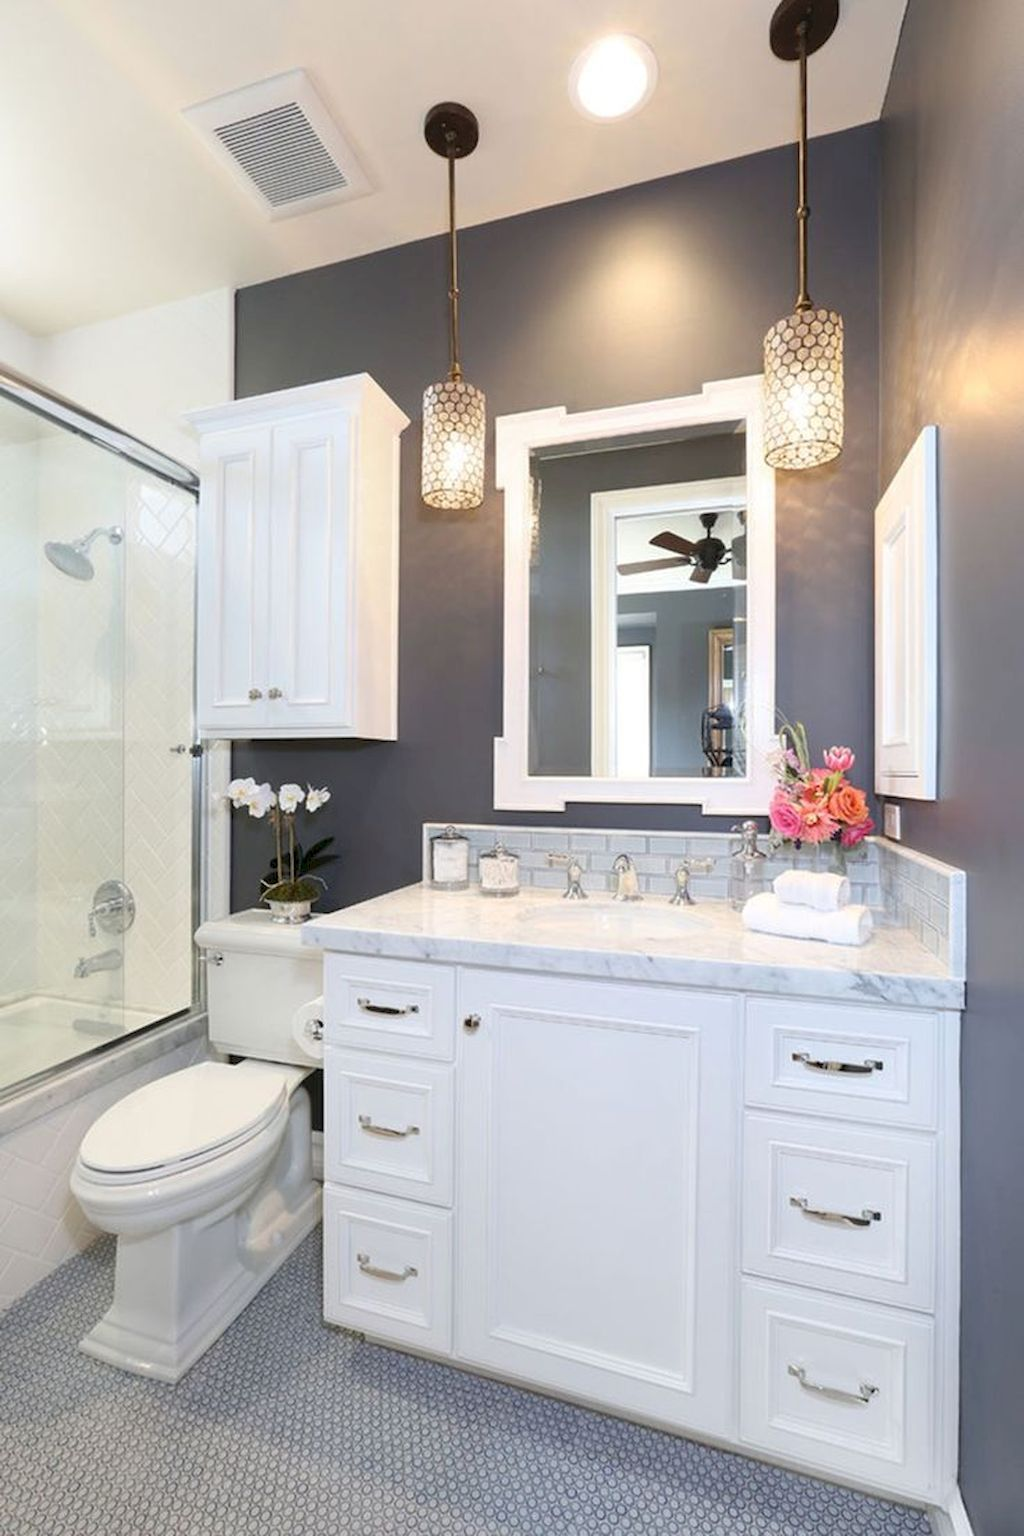 40 Graceful Tiny Apartment Bathroom Remodel Ideas on A Budget | Tiny ...